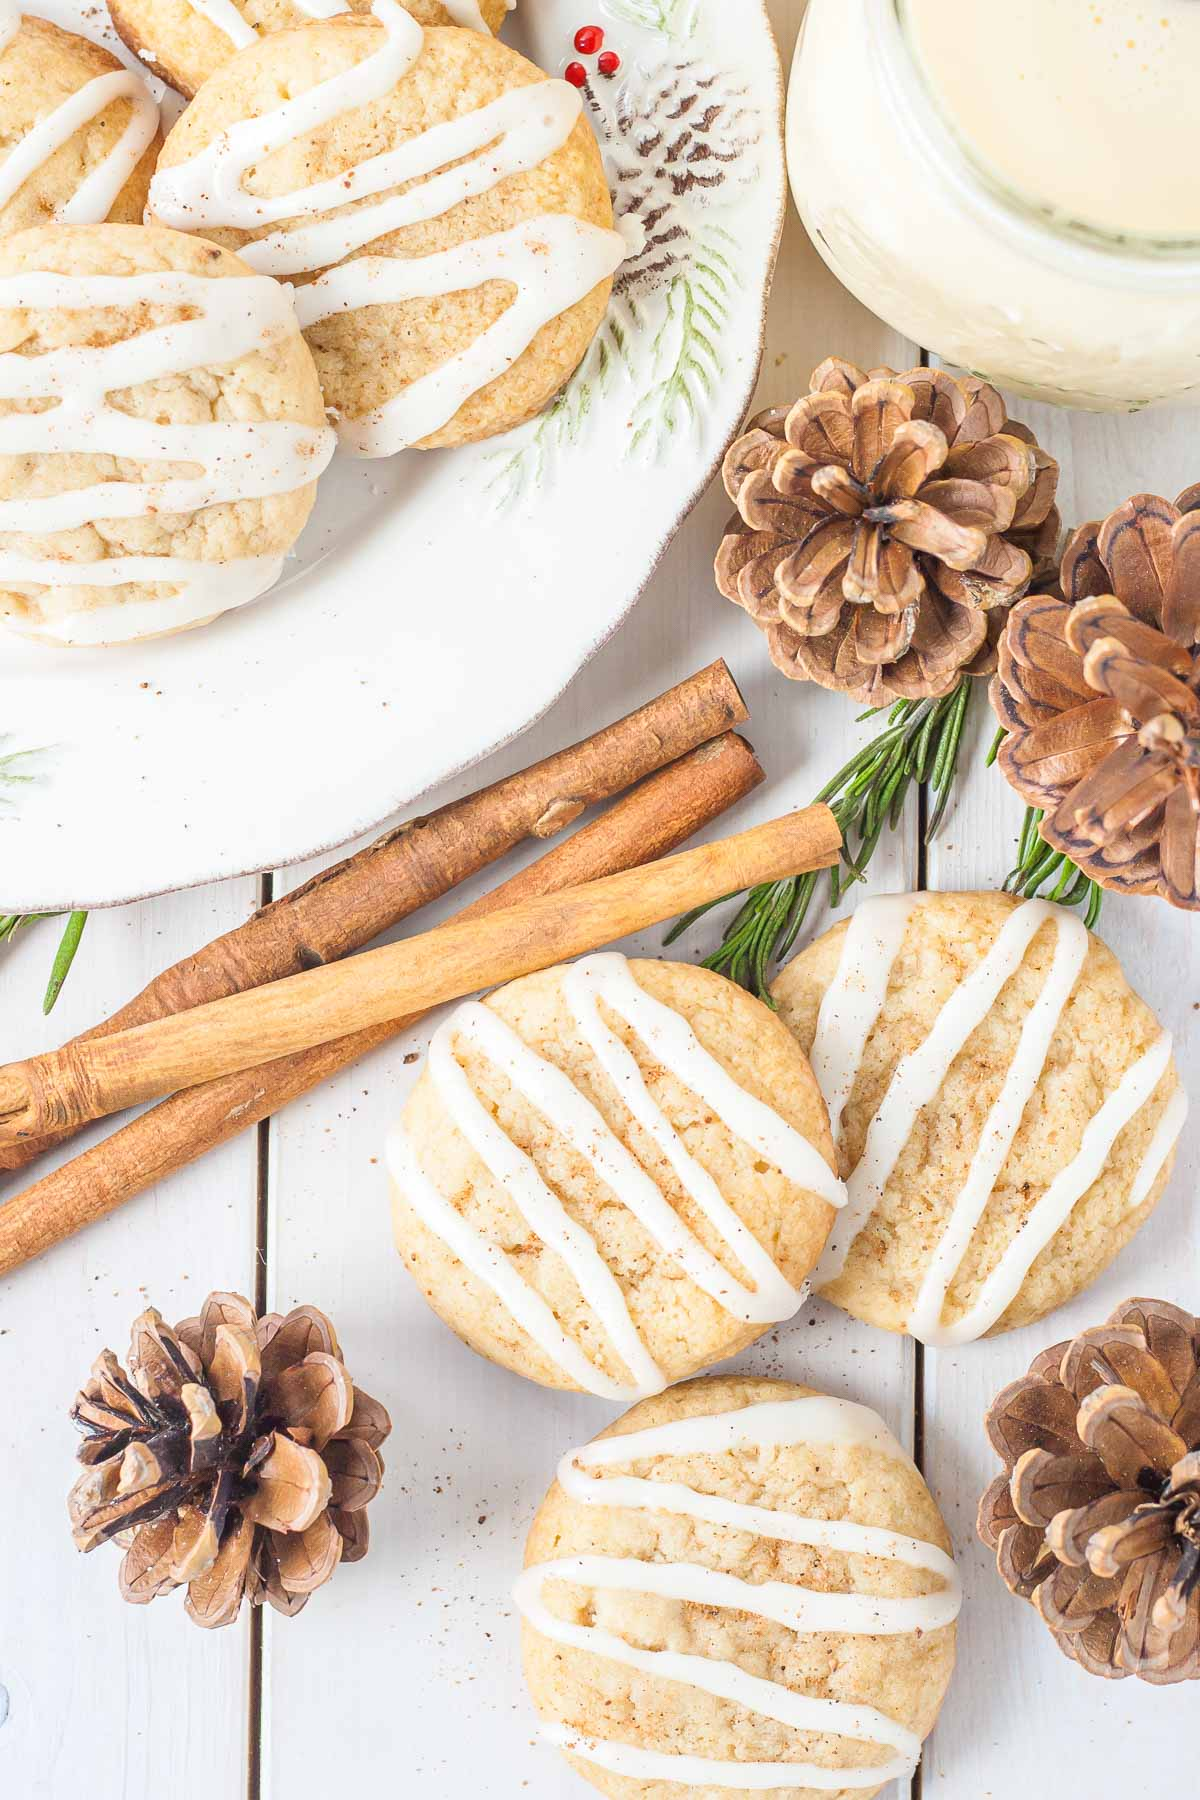 Cookies on a white table with festive decor.